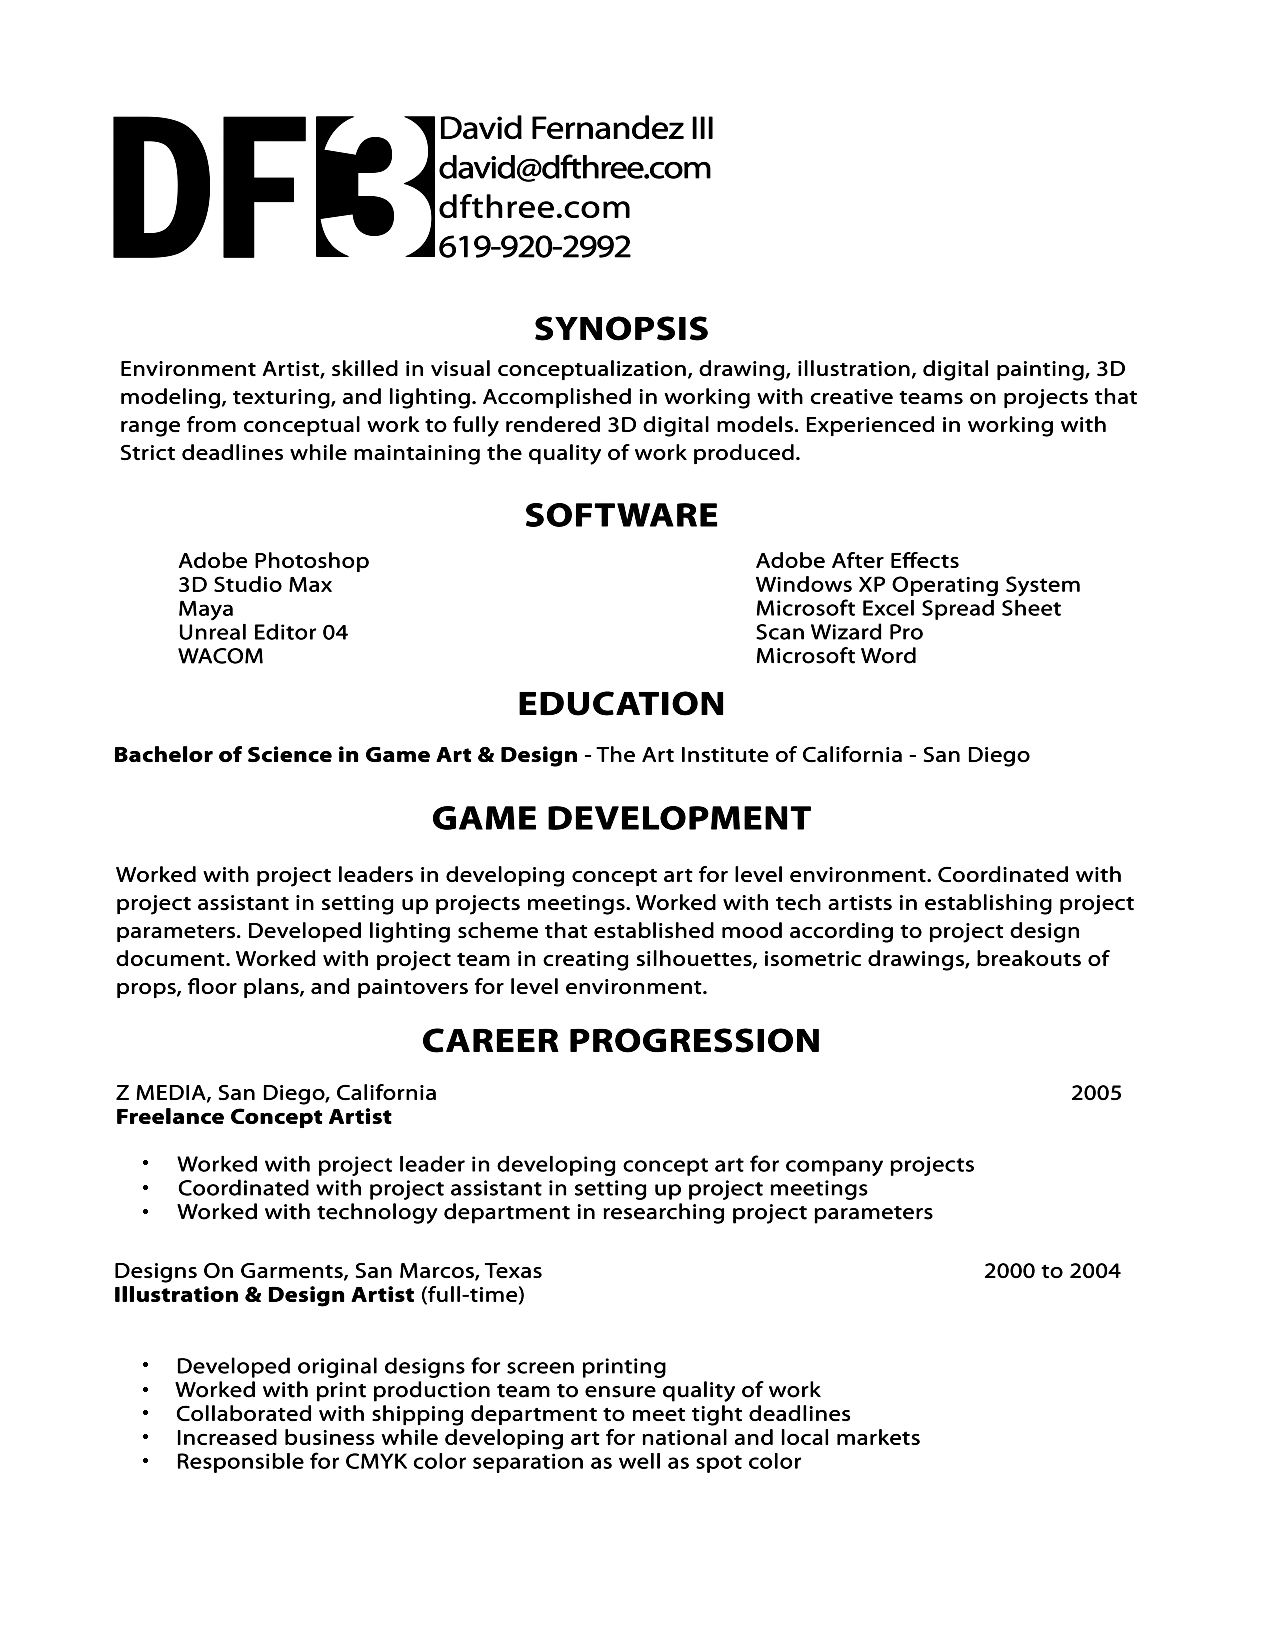 Pin by LaShea Ford on Résumé | Sample resume, Resume ...